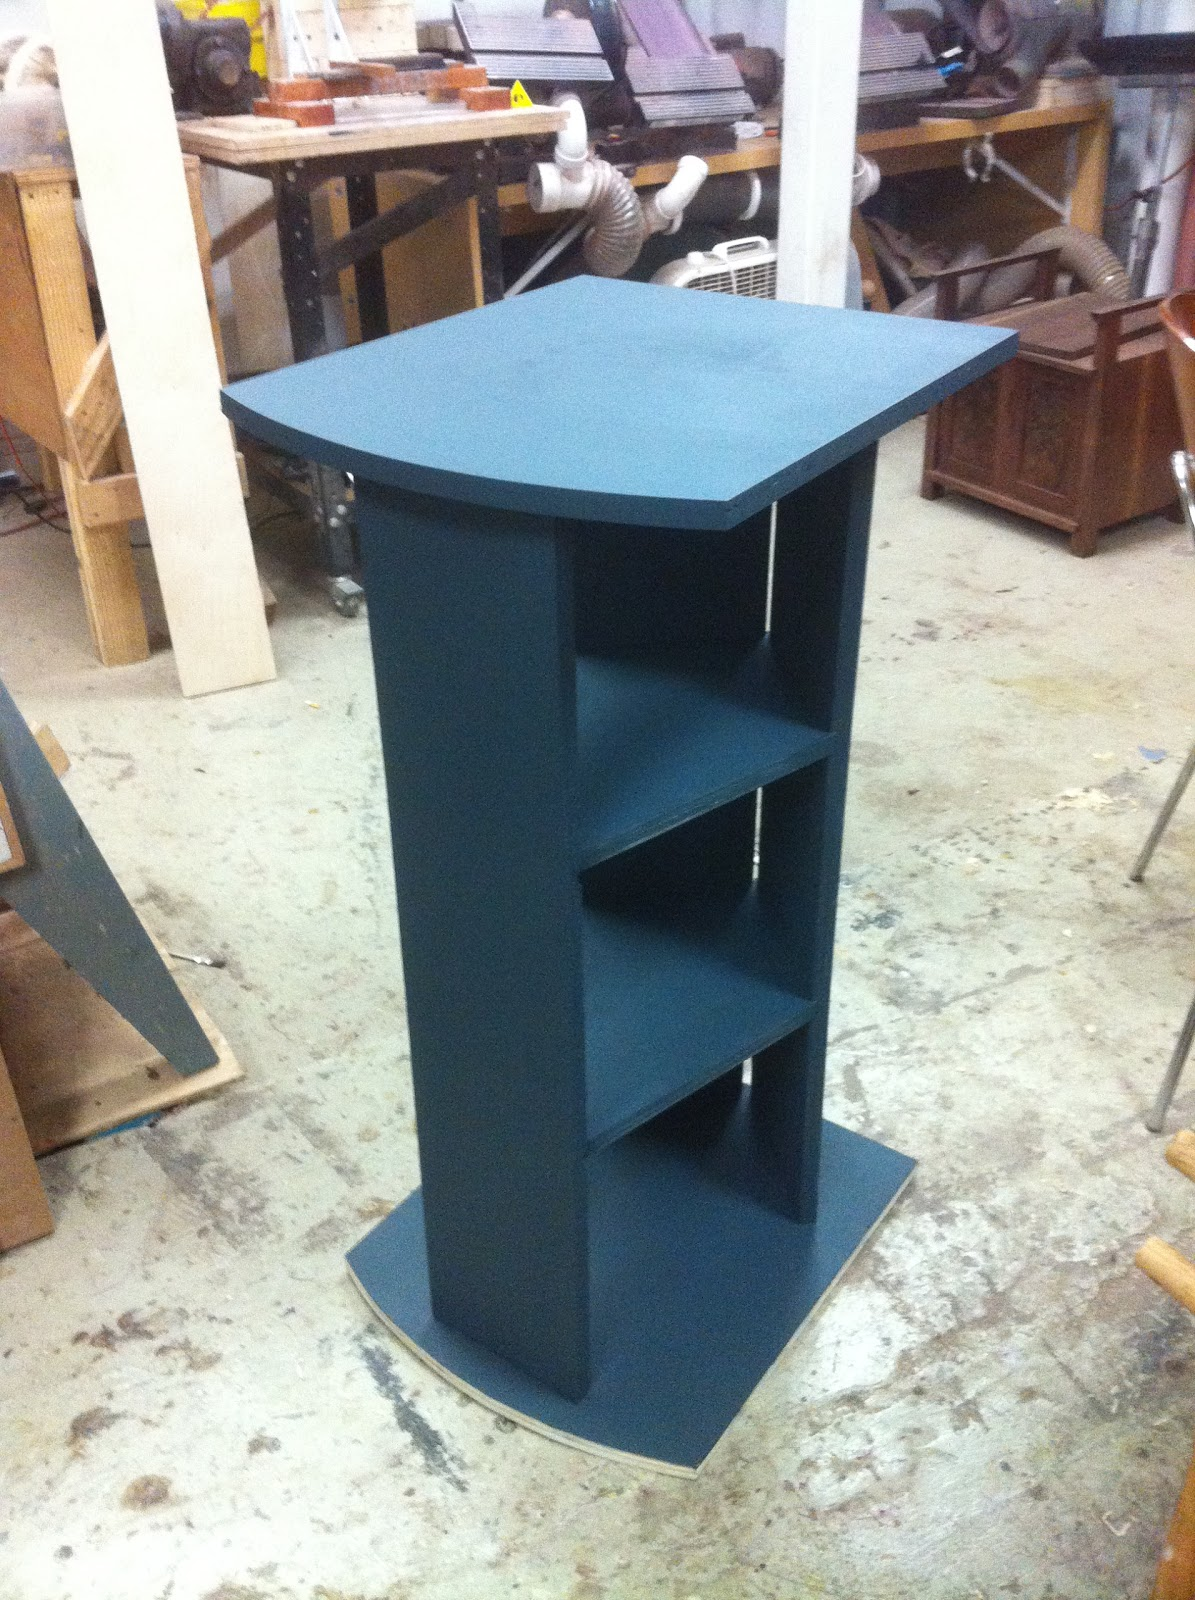 Idvw design new pedestal stand for the sera 15 gallon biotope for 15 gallon fish tank stand